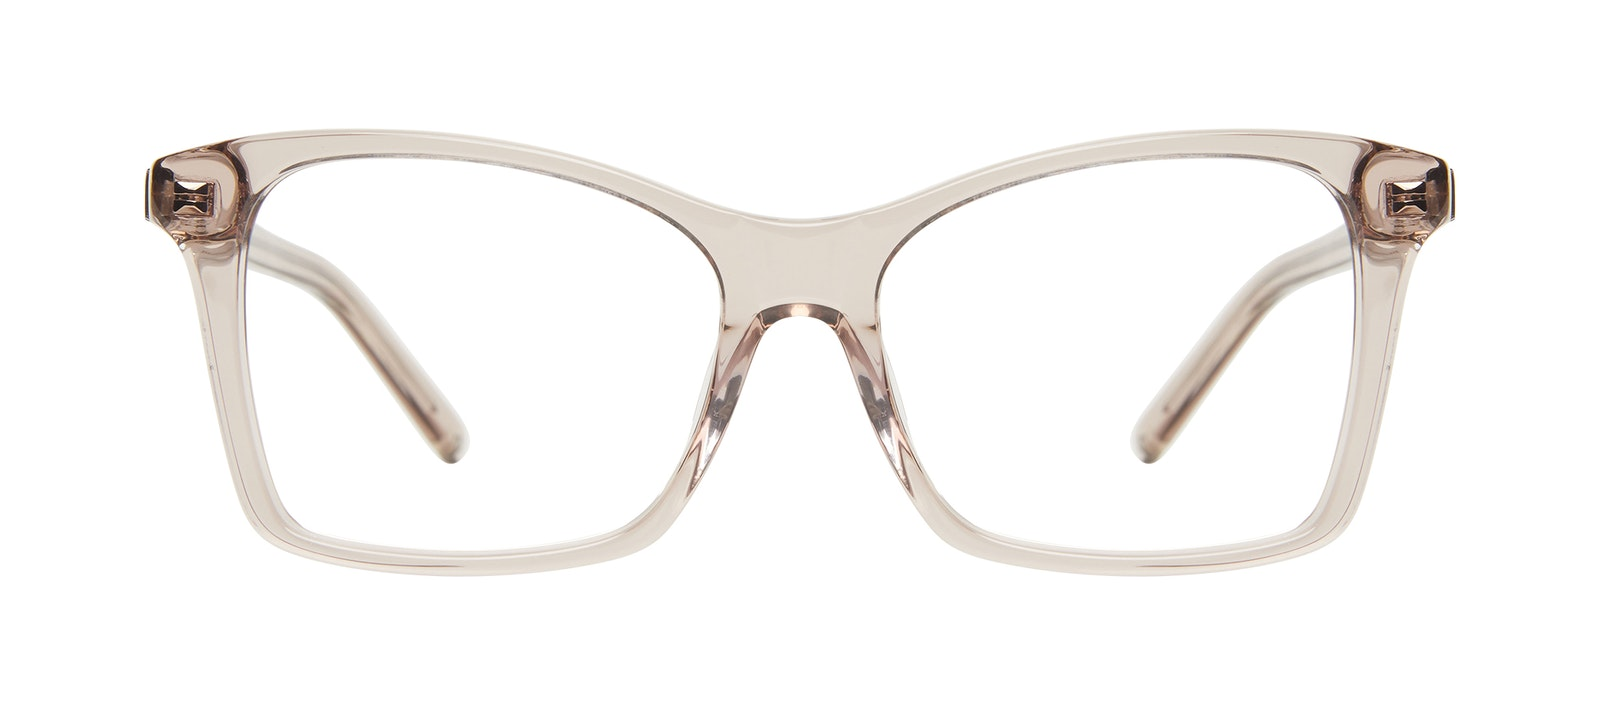 Affordable Fashion Glasses Square Eyeglasses Women Cadence Sand Front